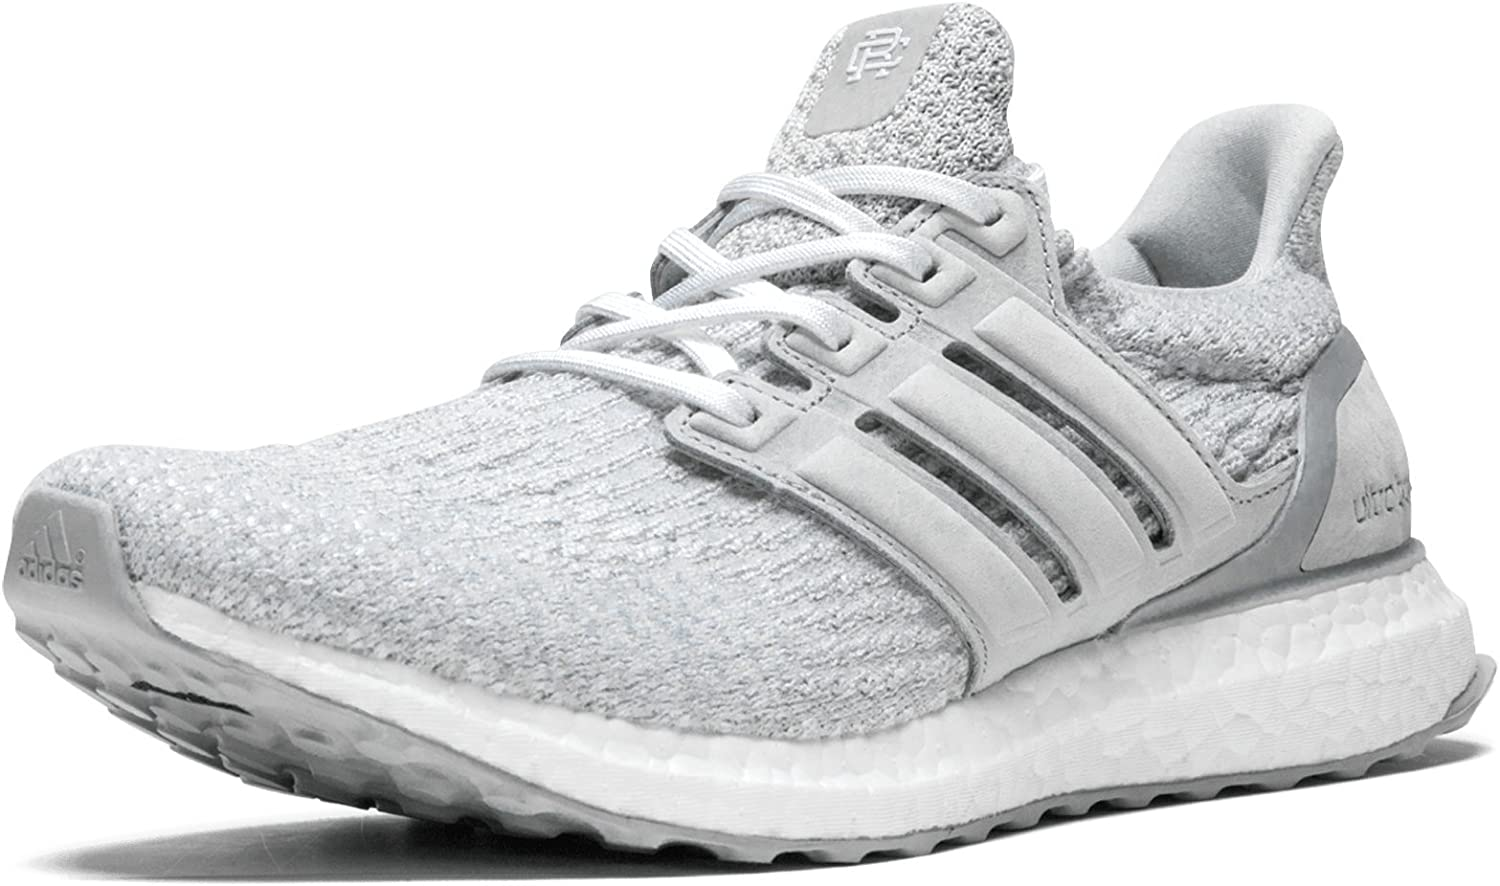 adidas Ultraboost Reigning Champ